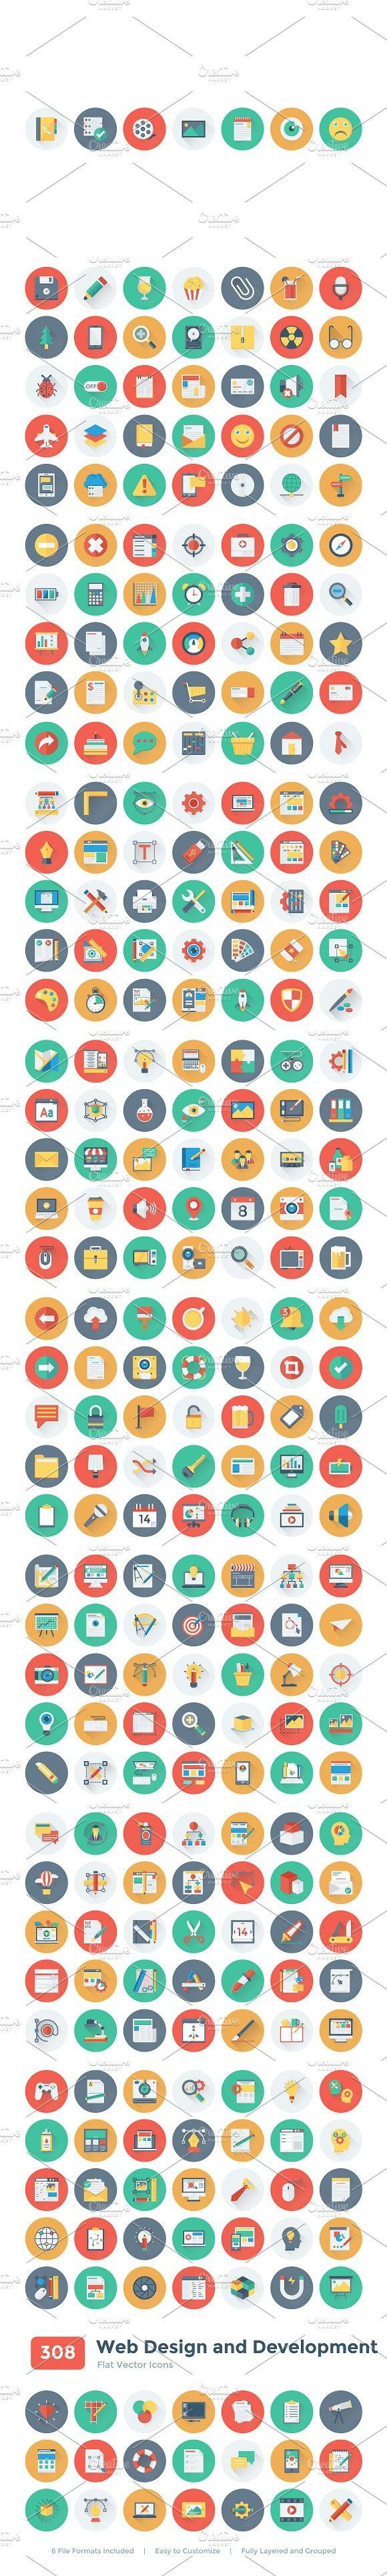 308 Web Design and Development Icons #webicons